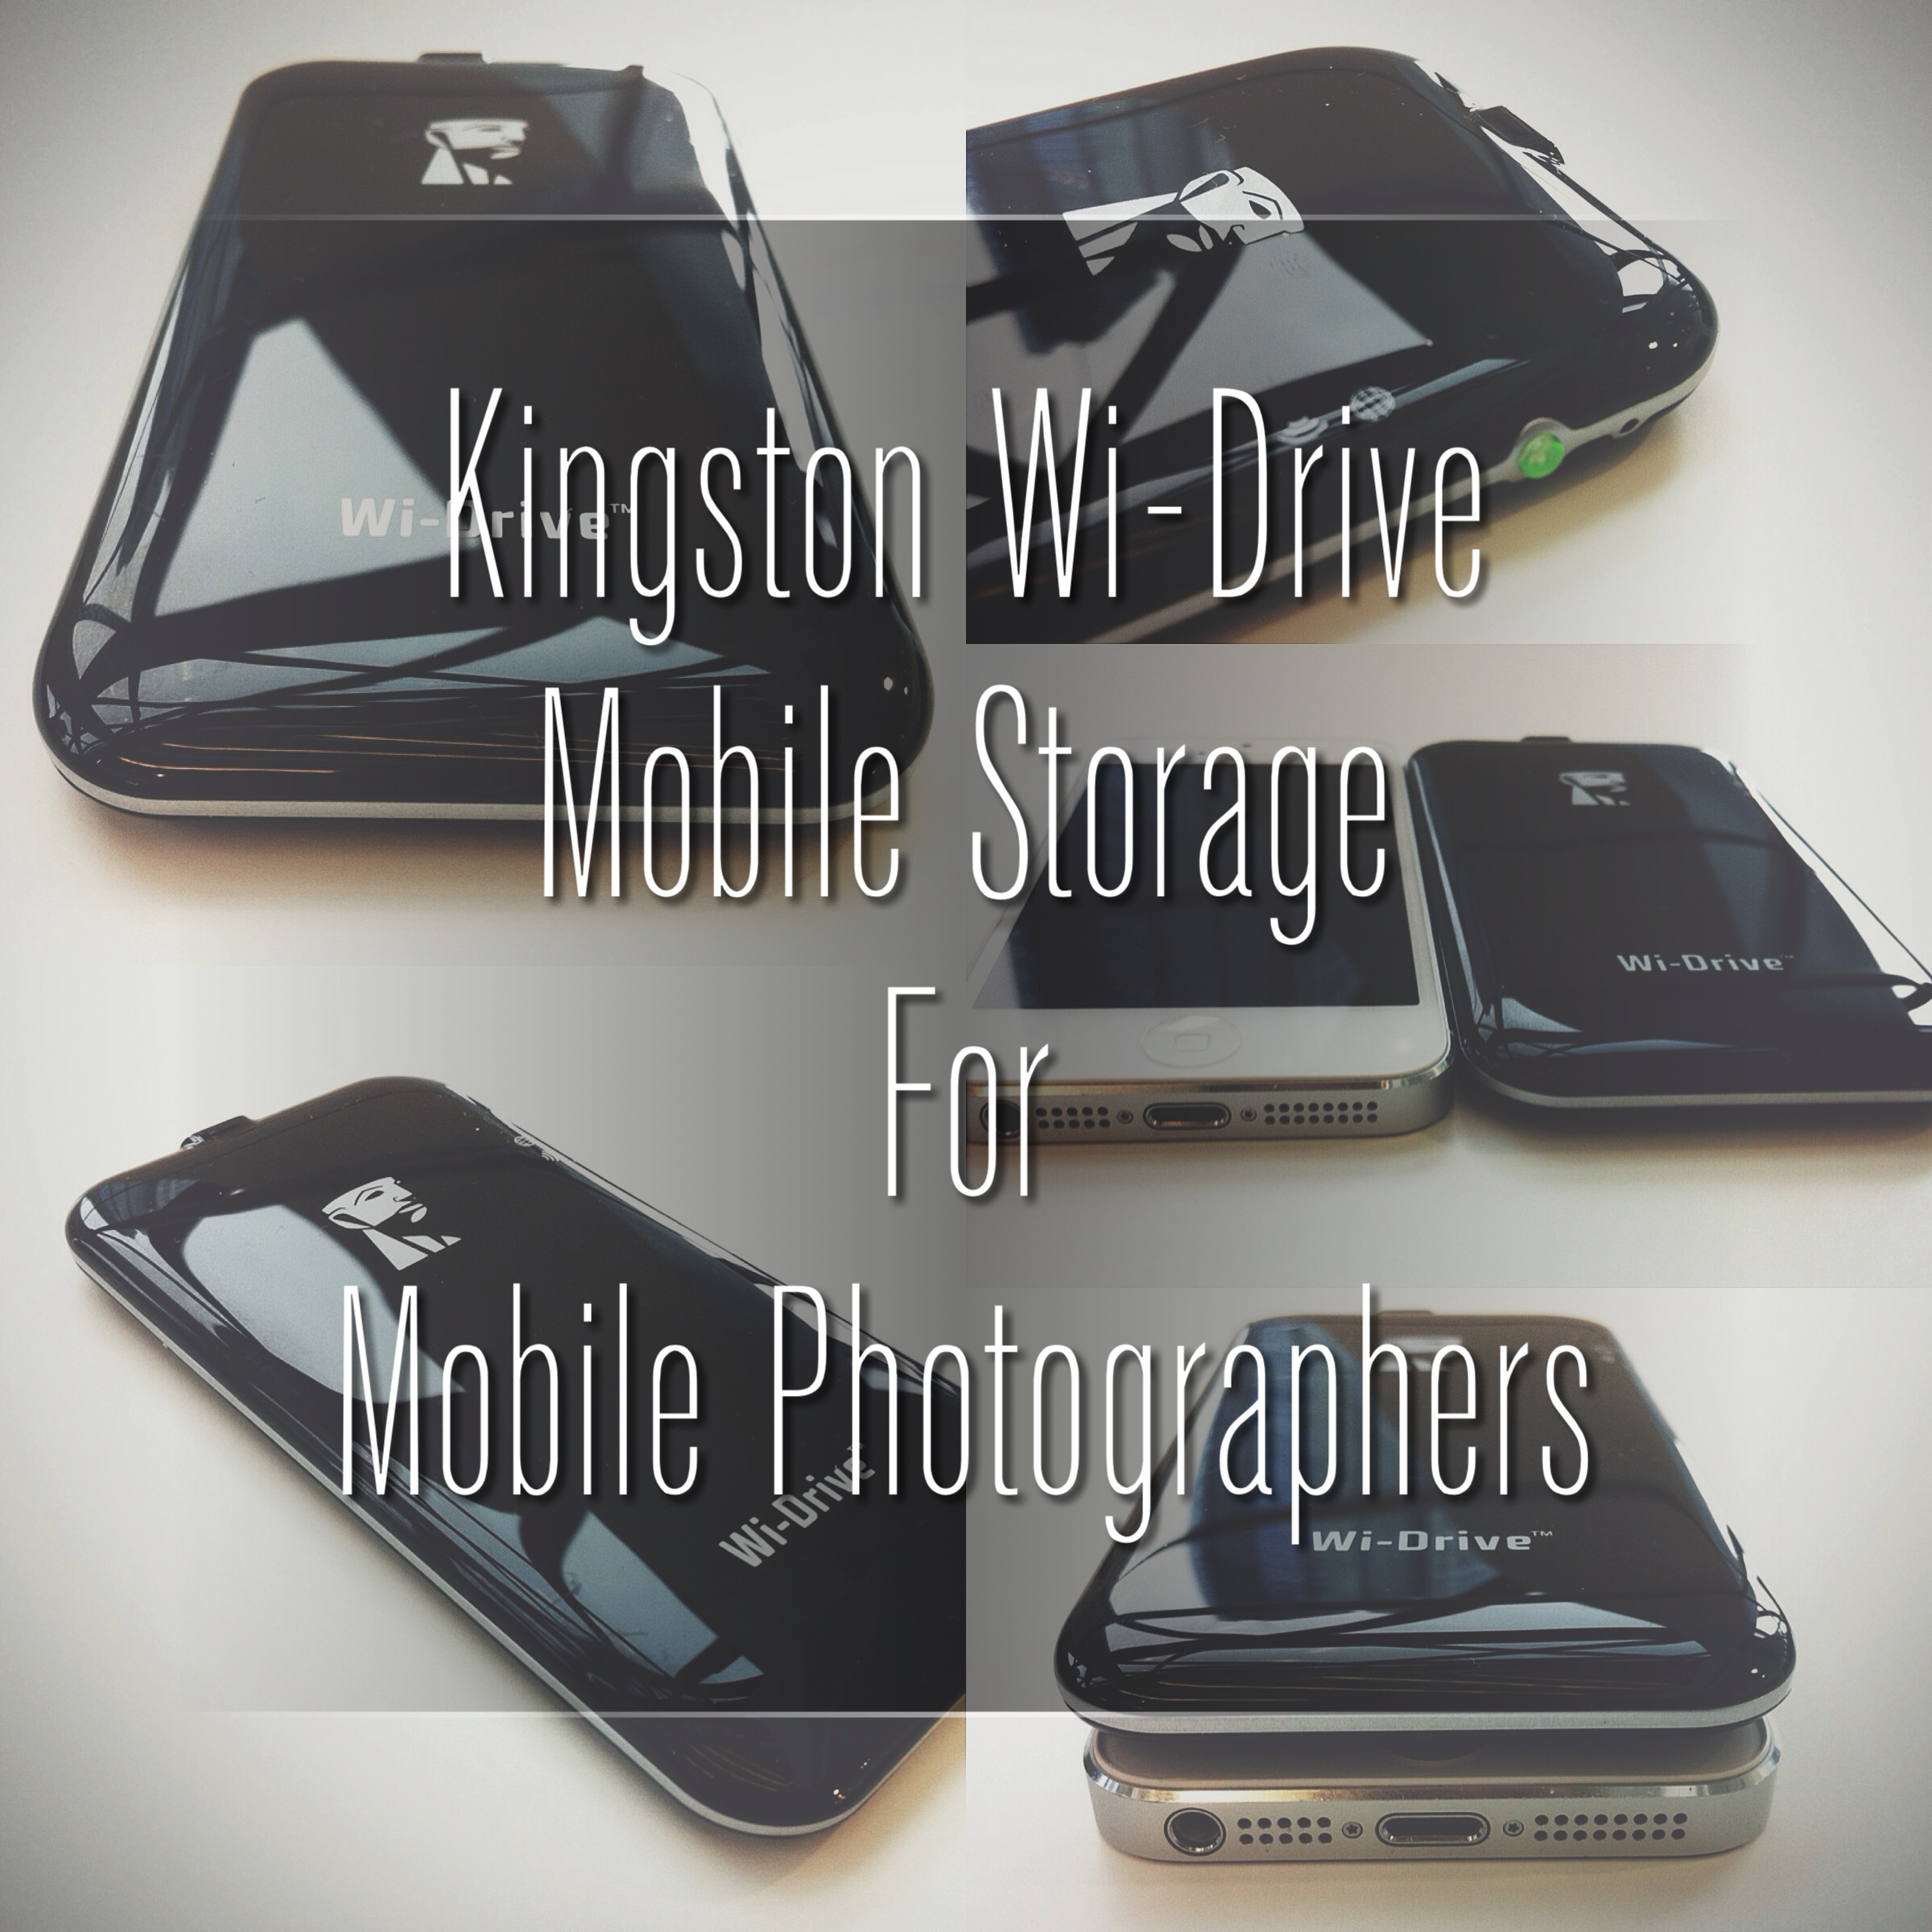 Kingston Wi-Drive - Mobile Storage for Mobile Photographers